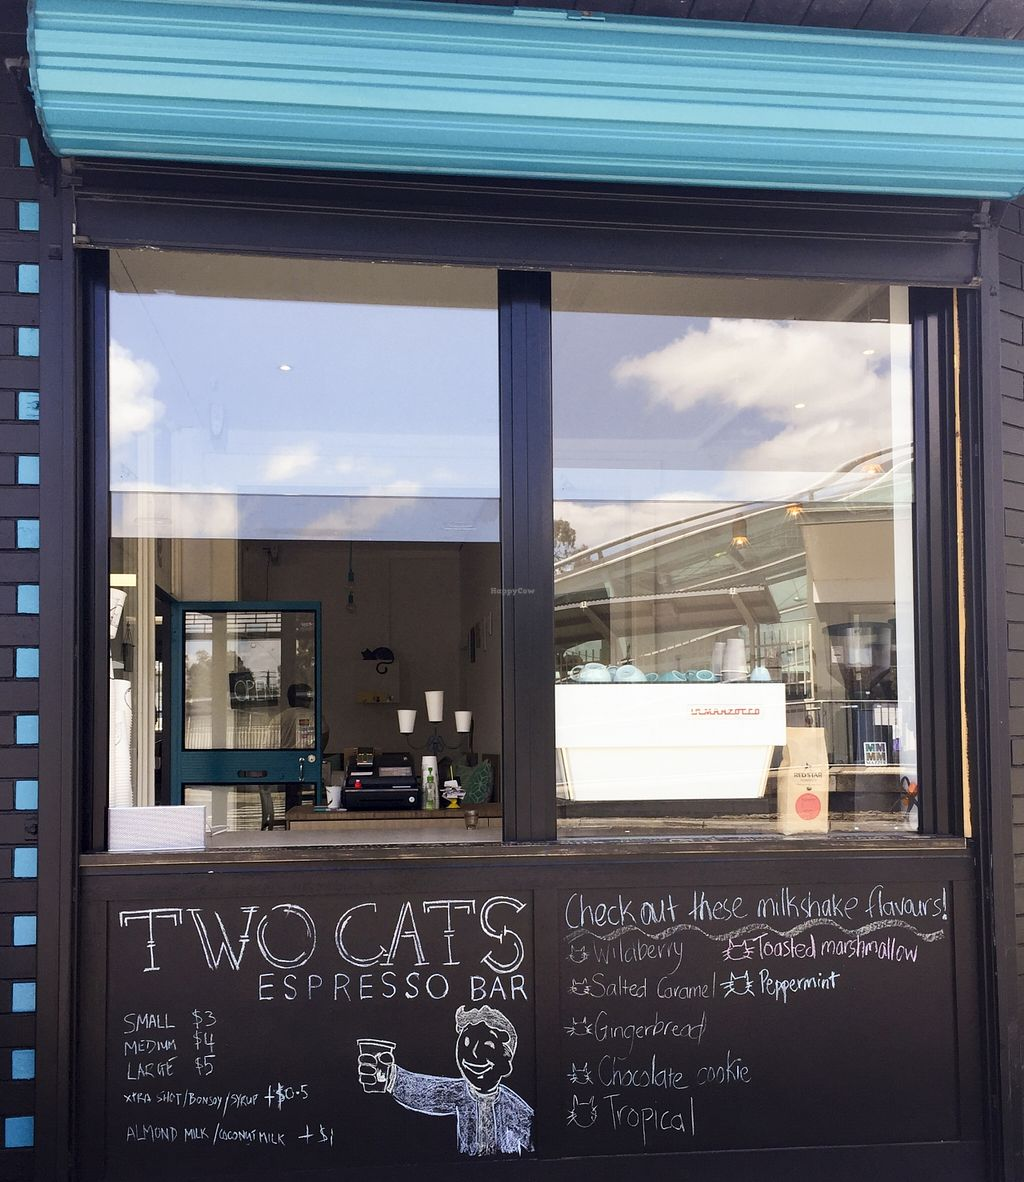 "Photo of Two Cats Espresso Bar  by <a href=""/members/profile/karlaess"">karlaess</a> <br/>Exterior <br/> November 15, 2015  - <a href='/contact/abuse/image/63229/125043'>Report</a>"